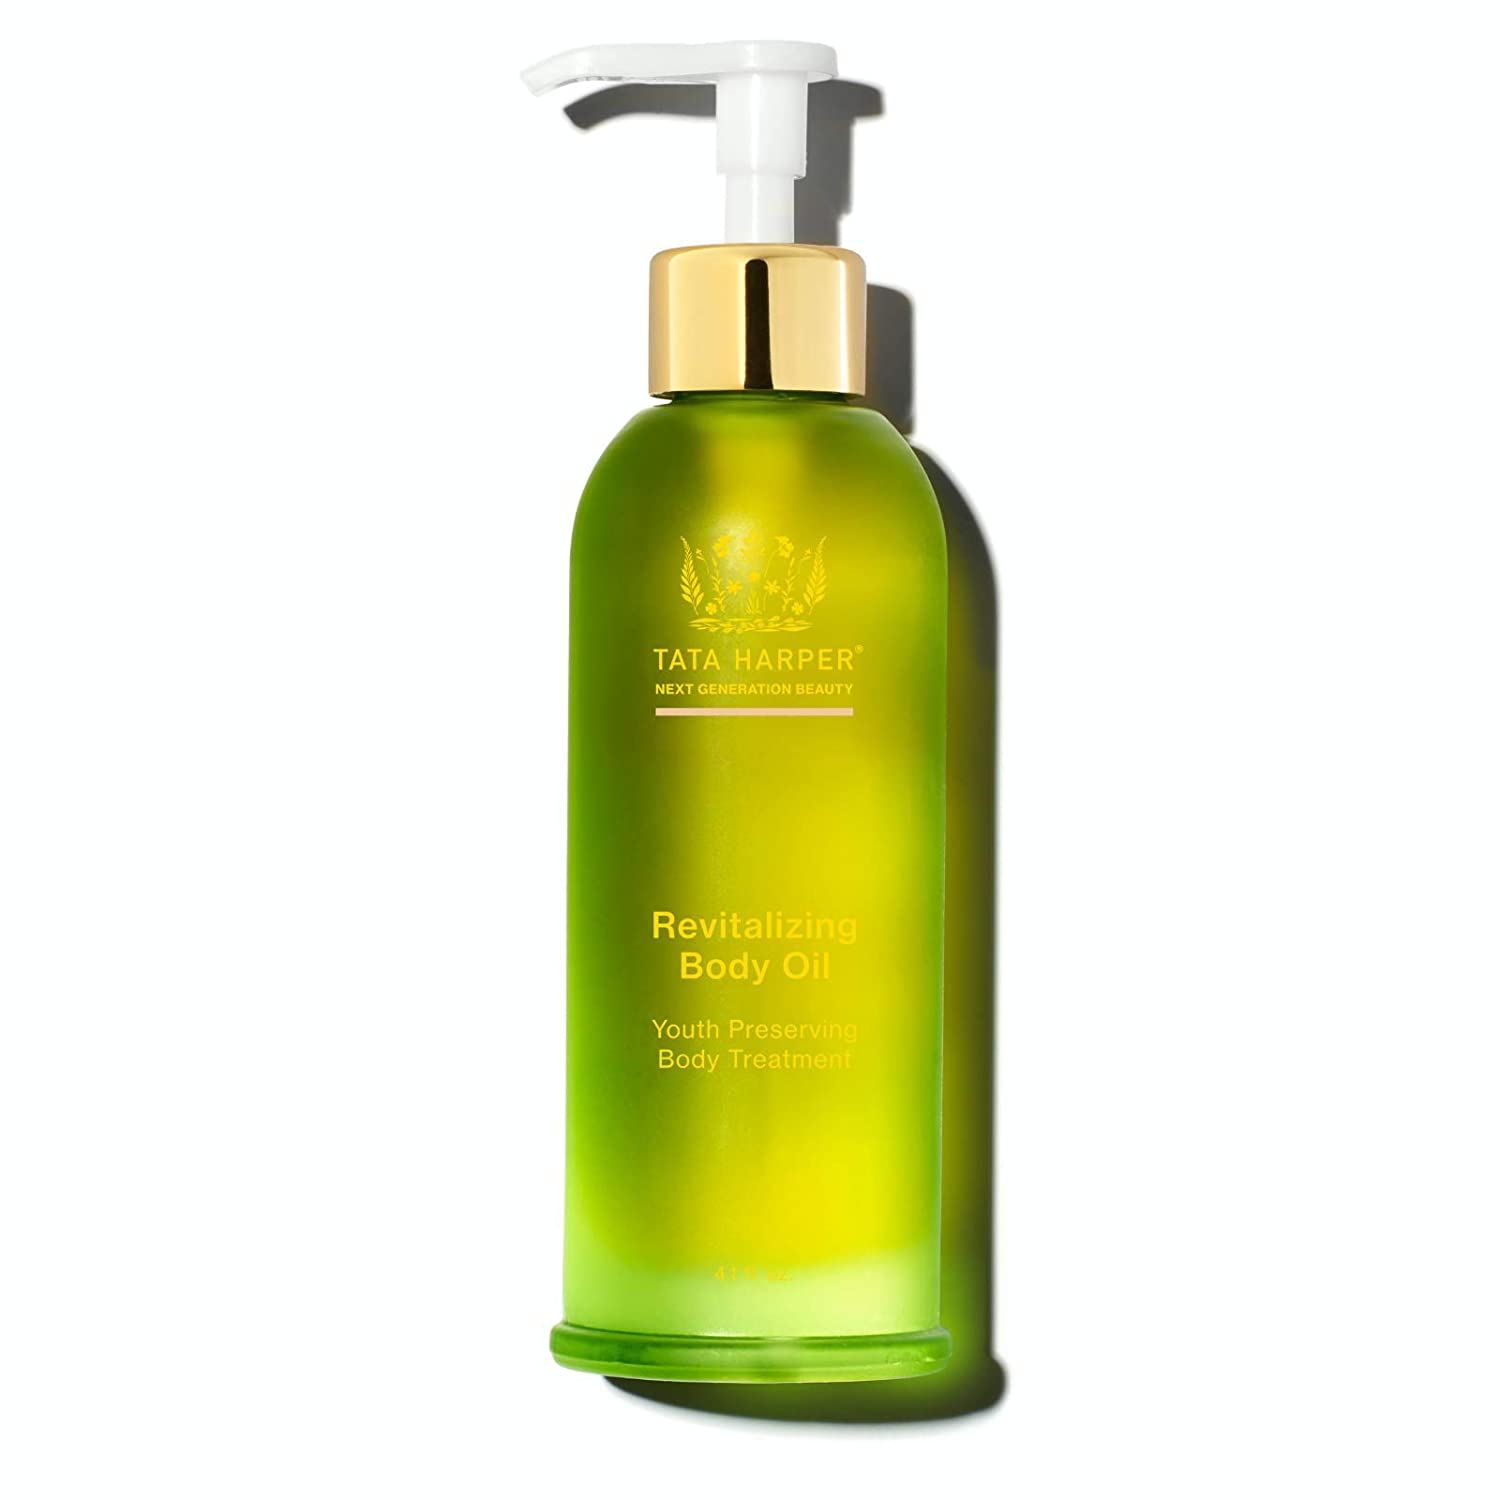 Tata Harper Revitalizing Anti-Aging Body Oil